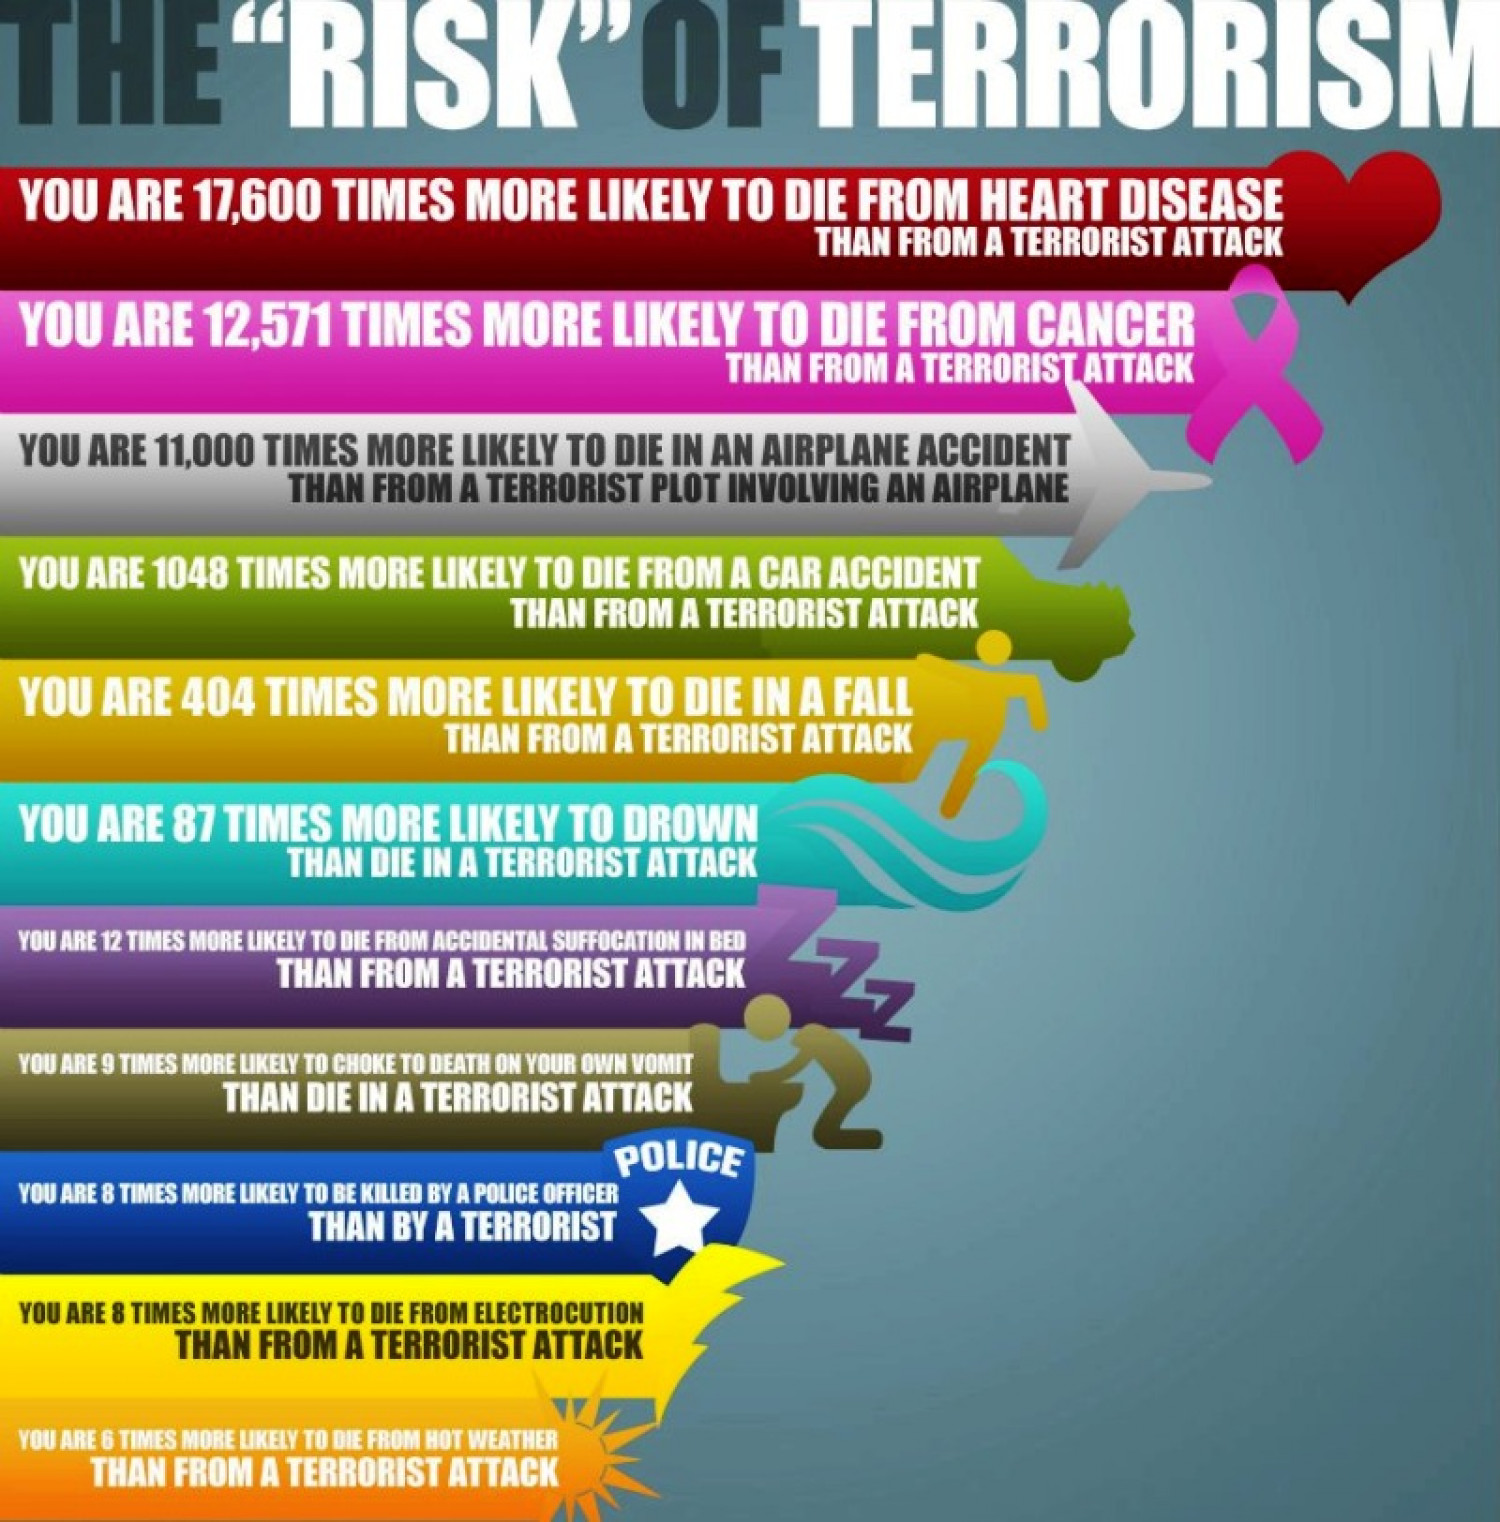 The Risk of Terrorism Infographic